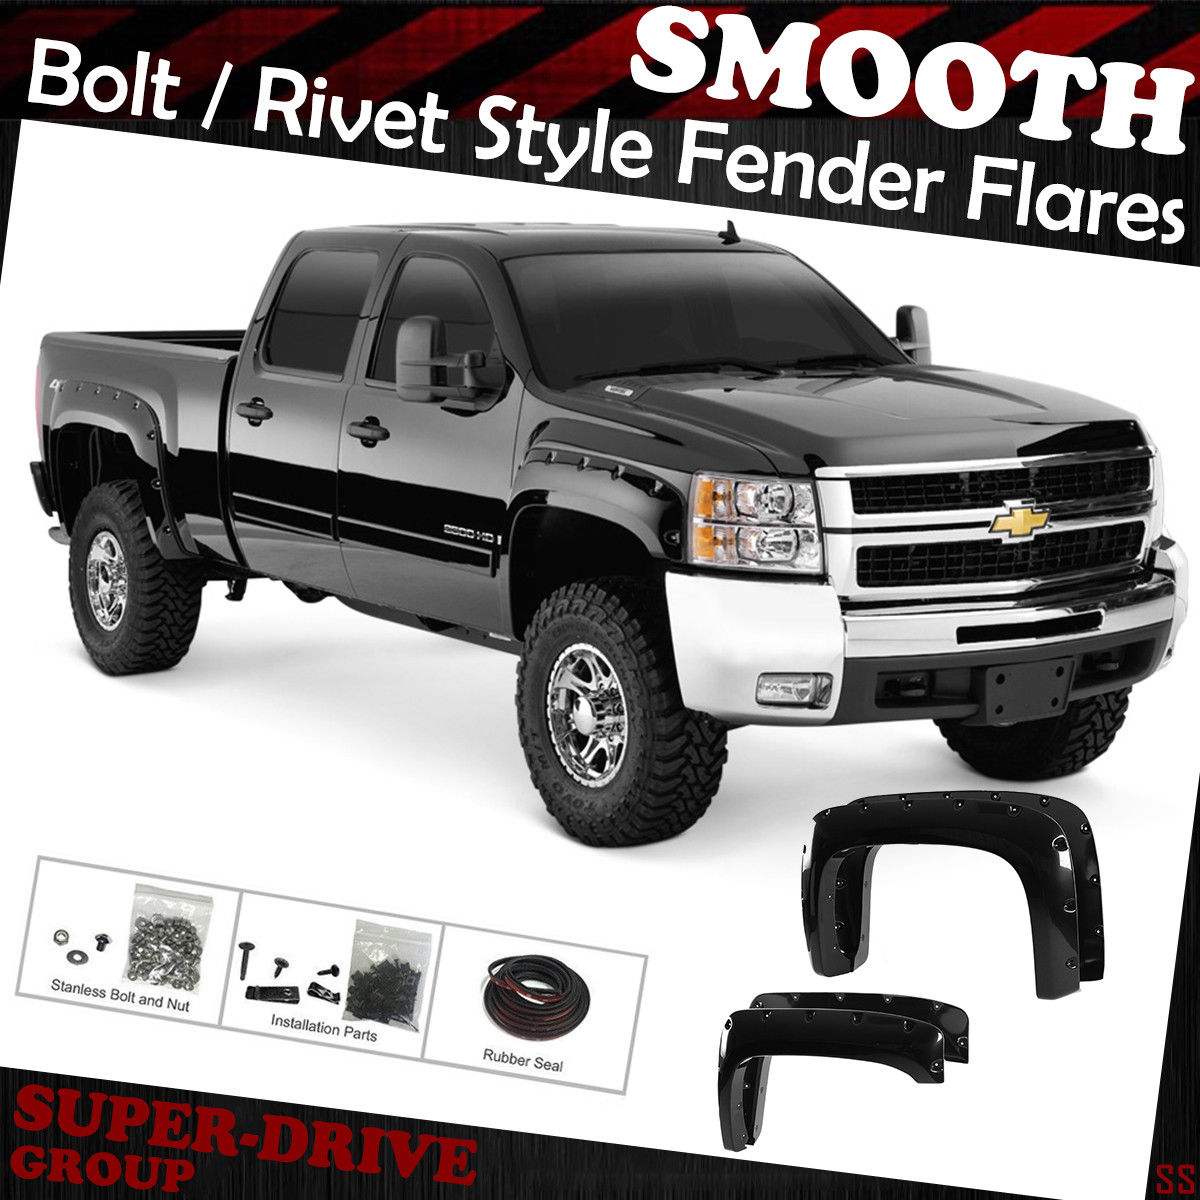 Fender Flares 2007-2014 Silverado 1500 2500 3500 HD Bolt On Rivet Paintable